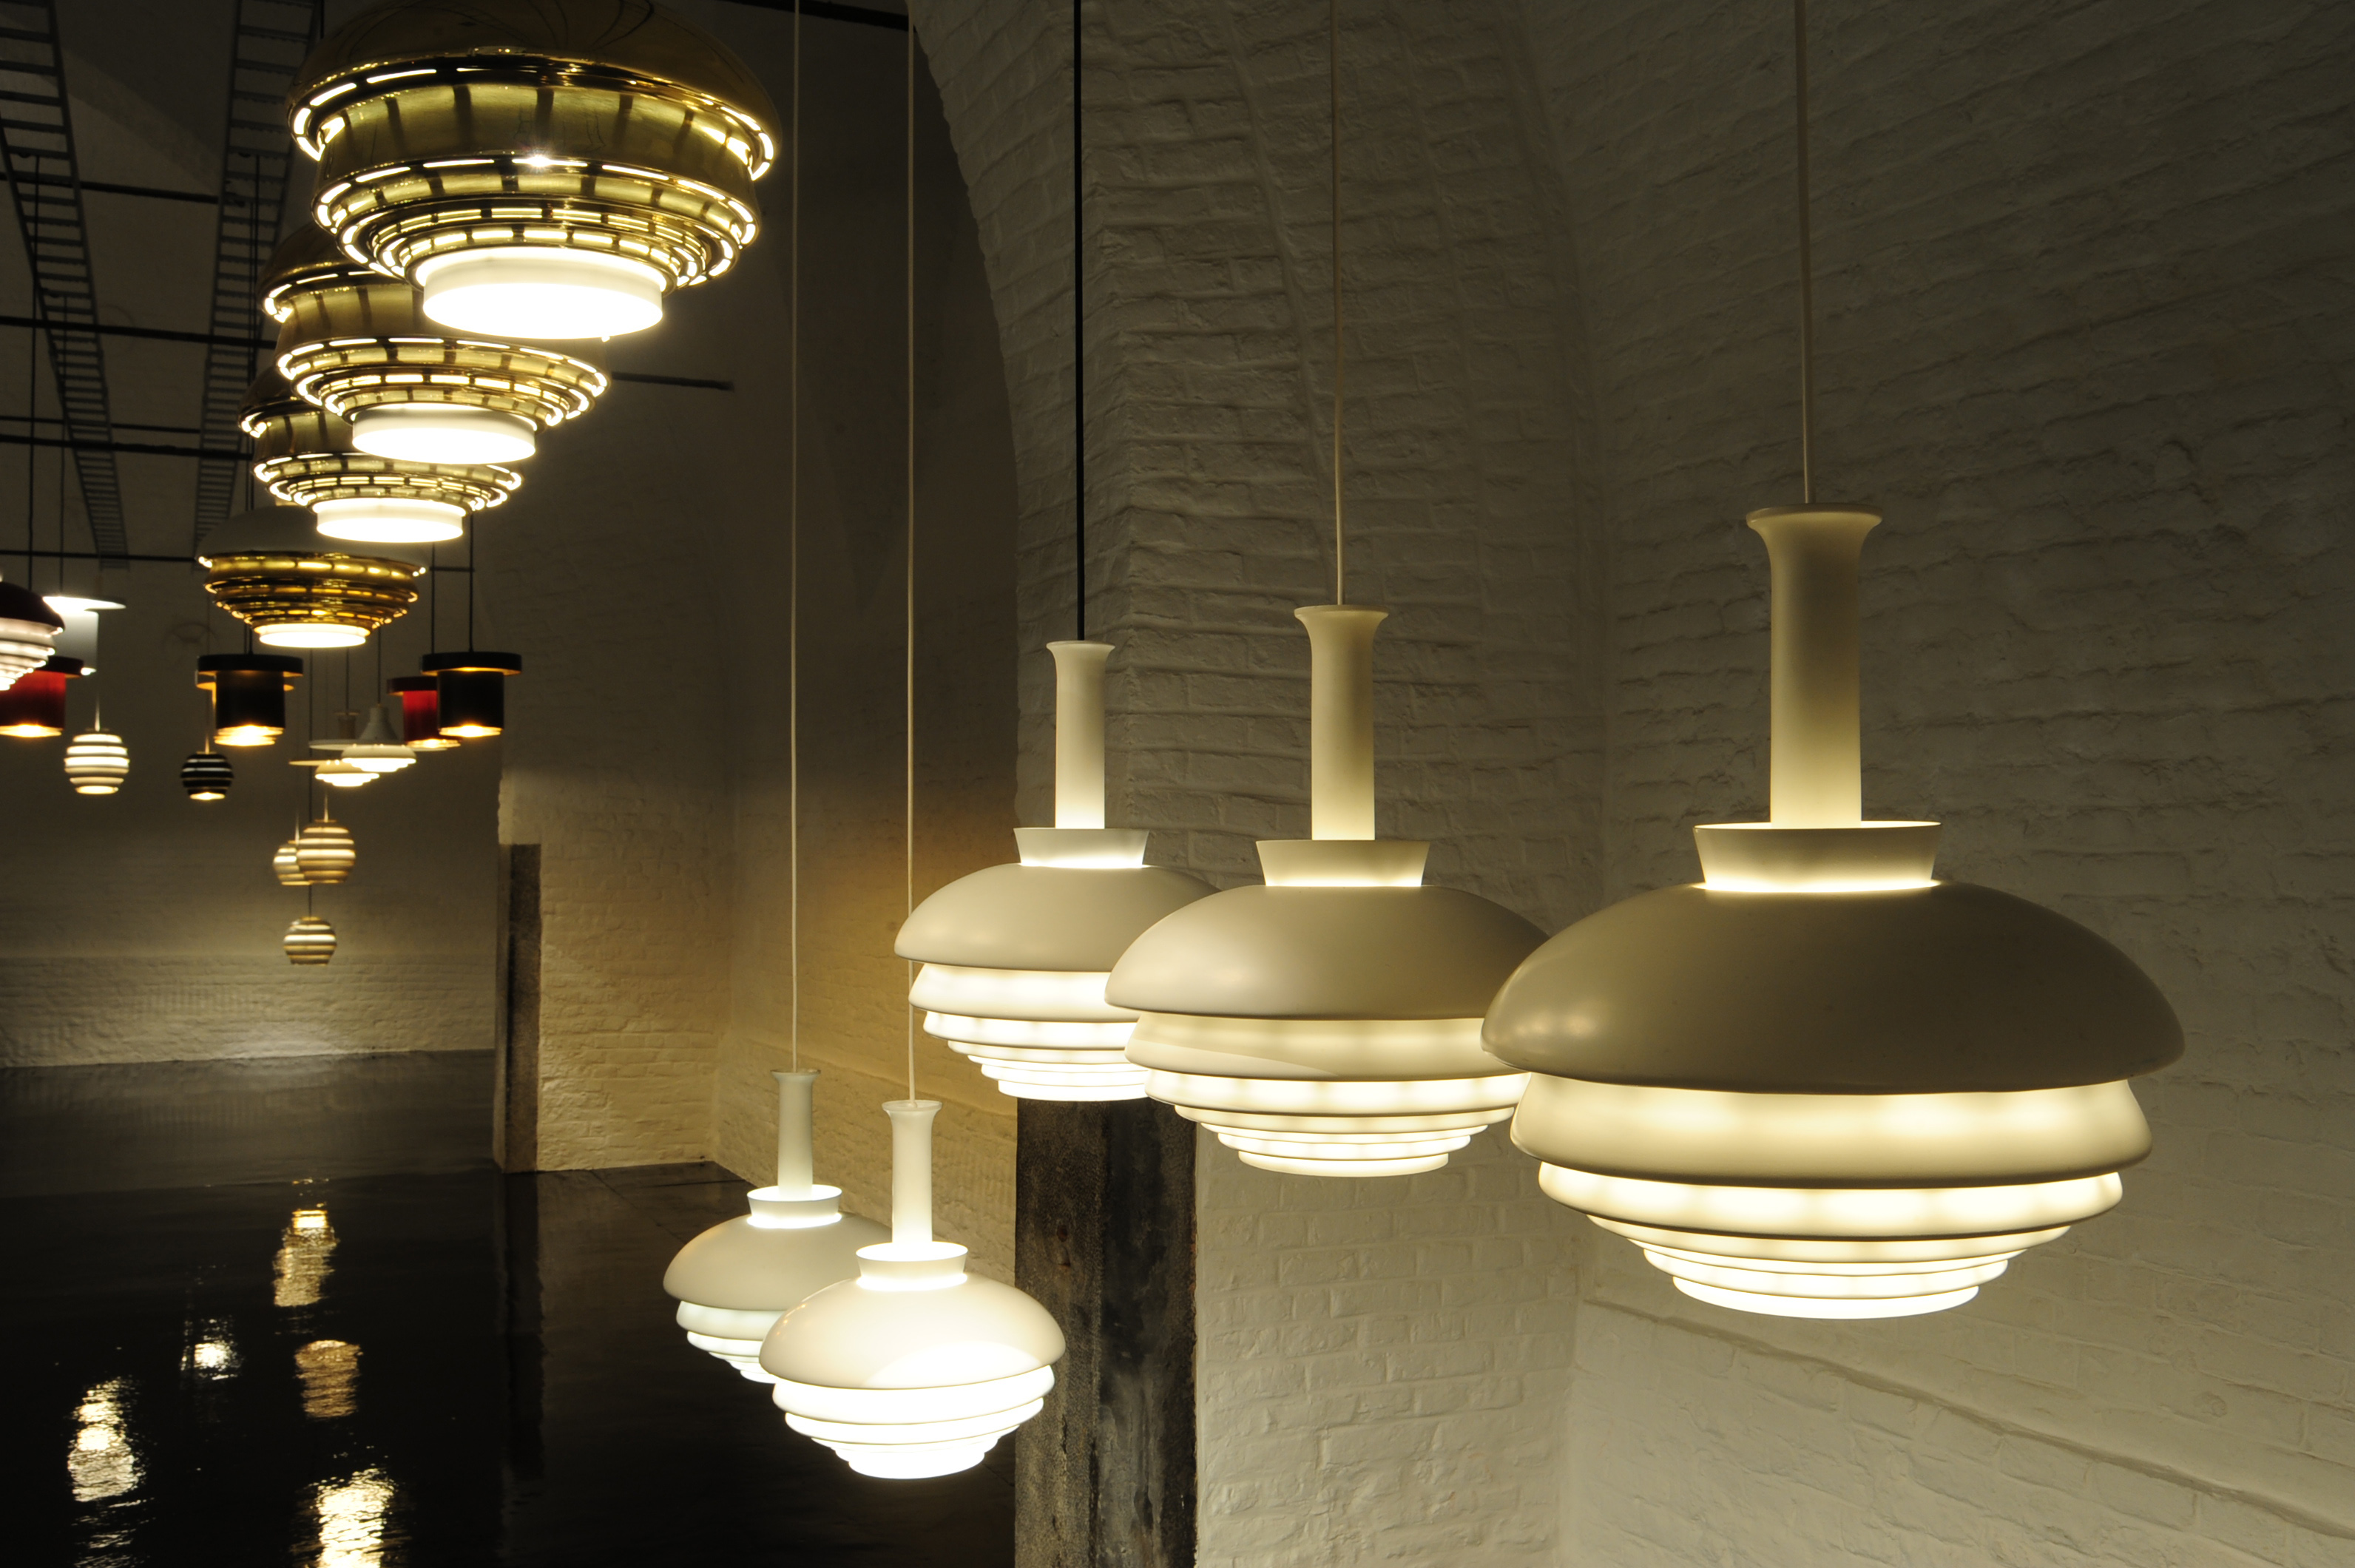 Alvar Aalto: Lightings, at Le Grand Hornu